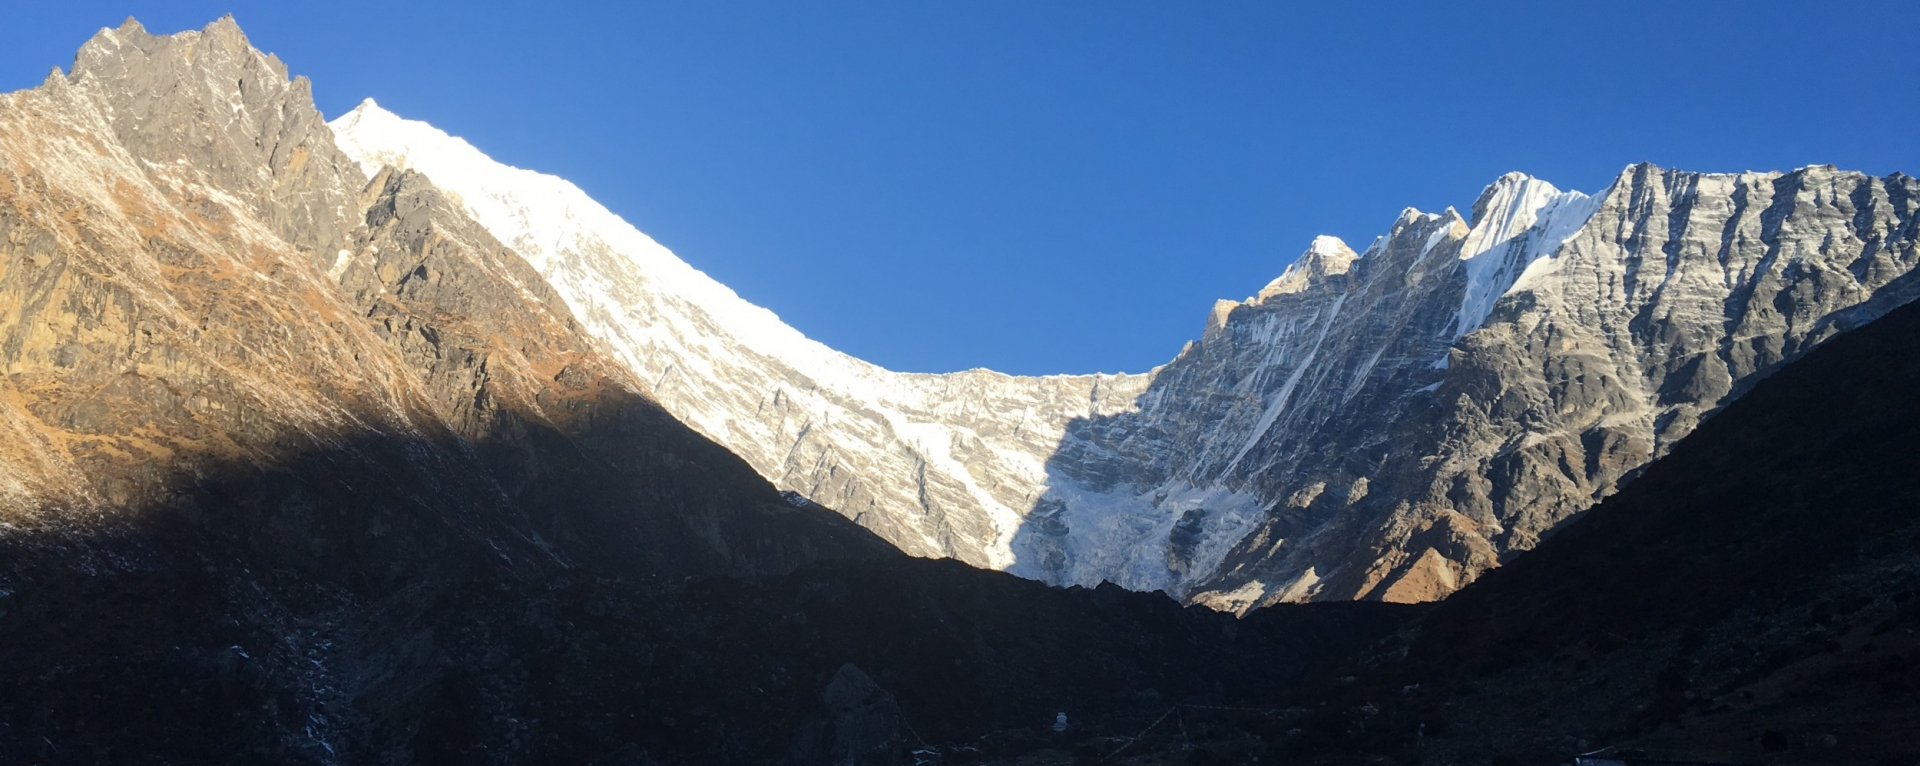 The view of Langtang lirung mountains above kyangjin village.